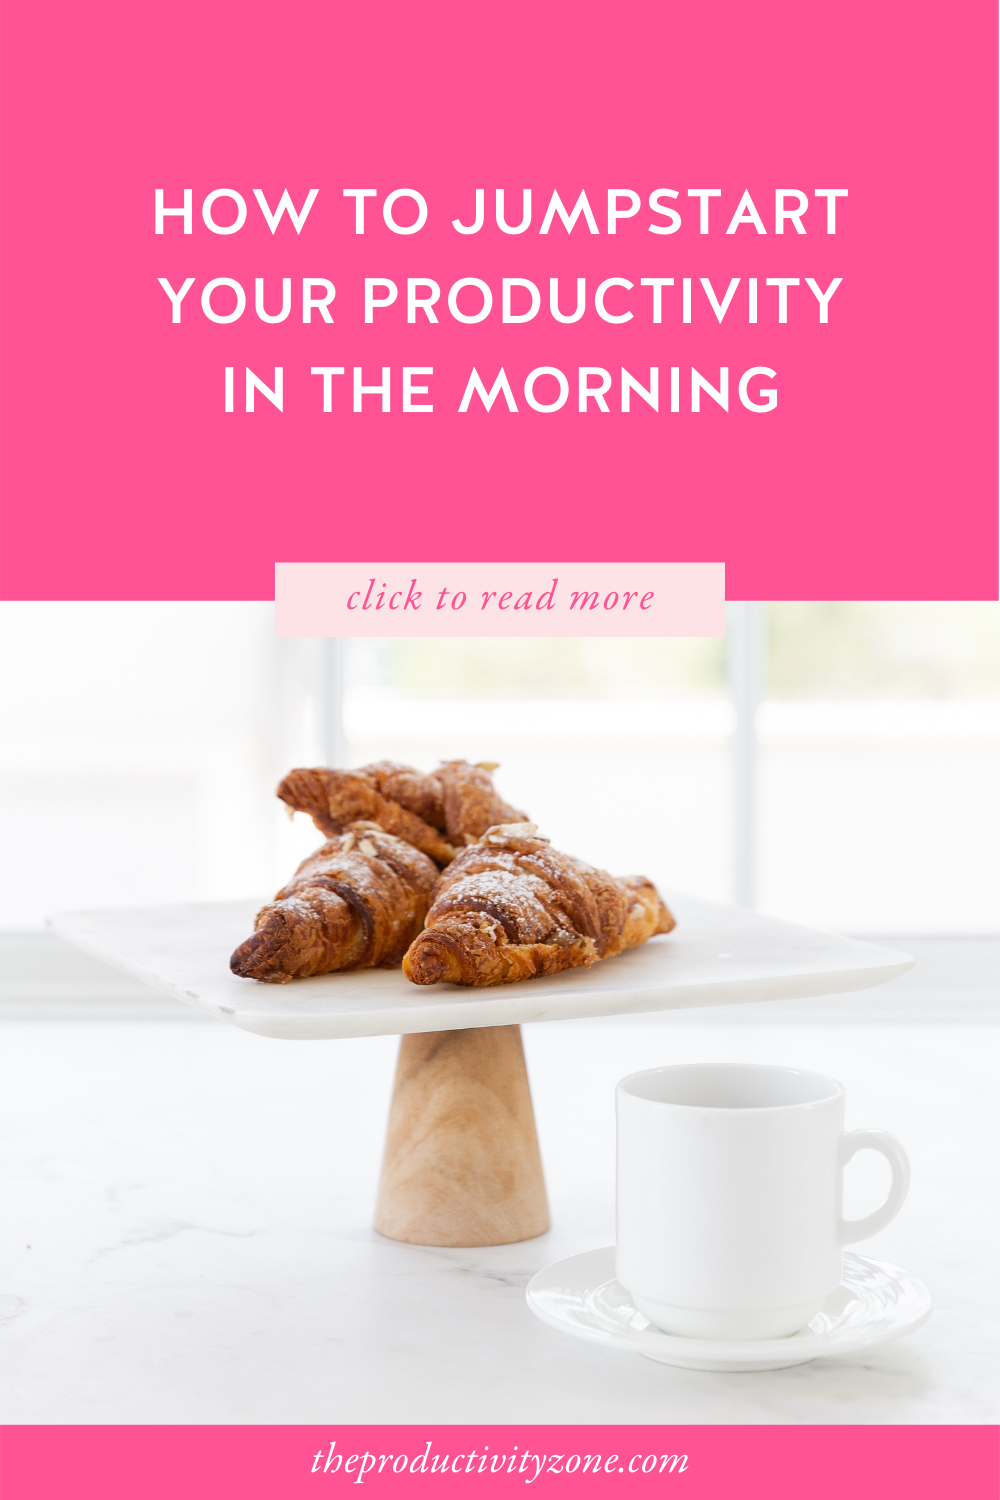 Chocolate croissants on a platter with a wooden pedestal beside a white coffee cup and saucer on a marble counter in front of a brightly lit window